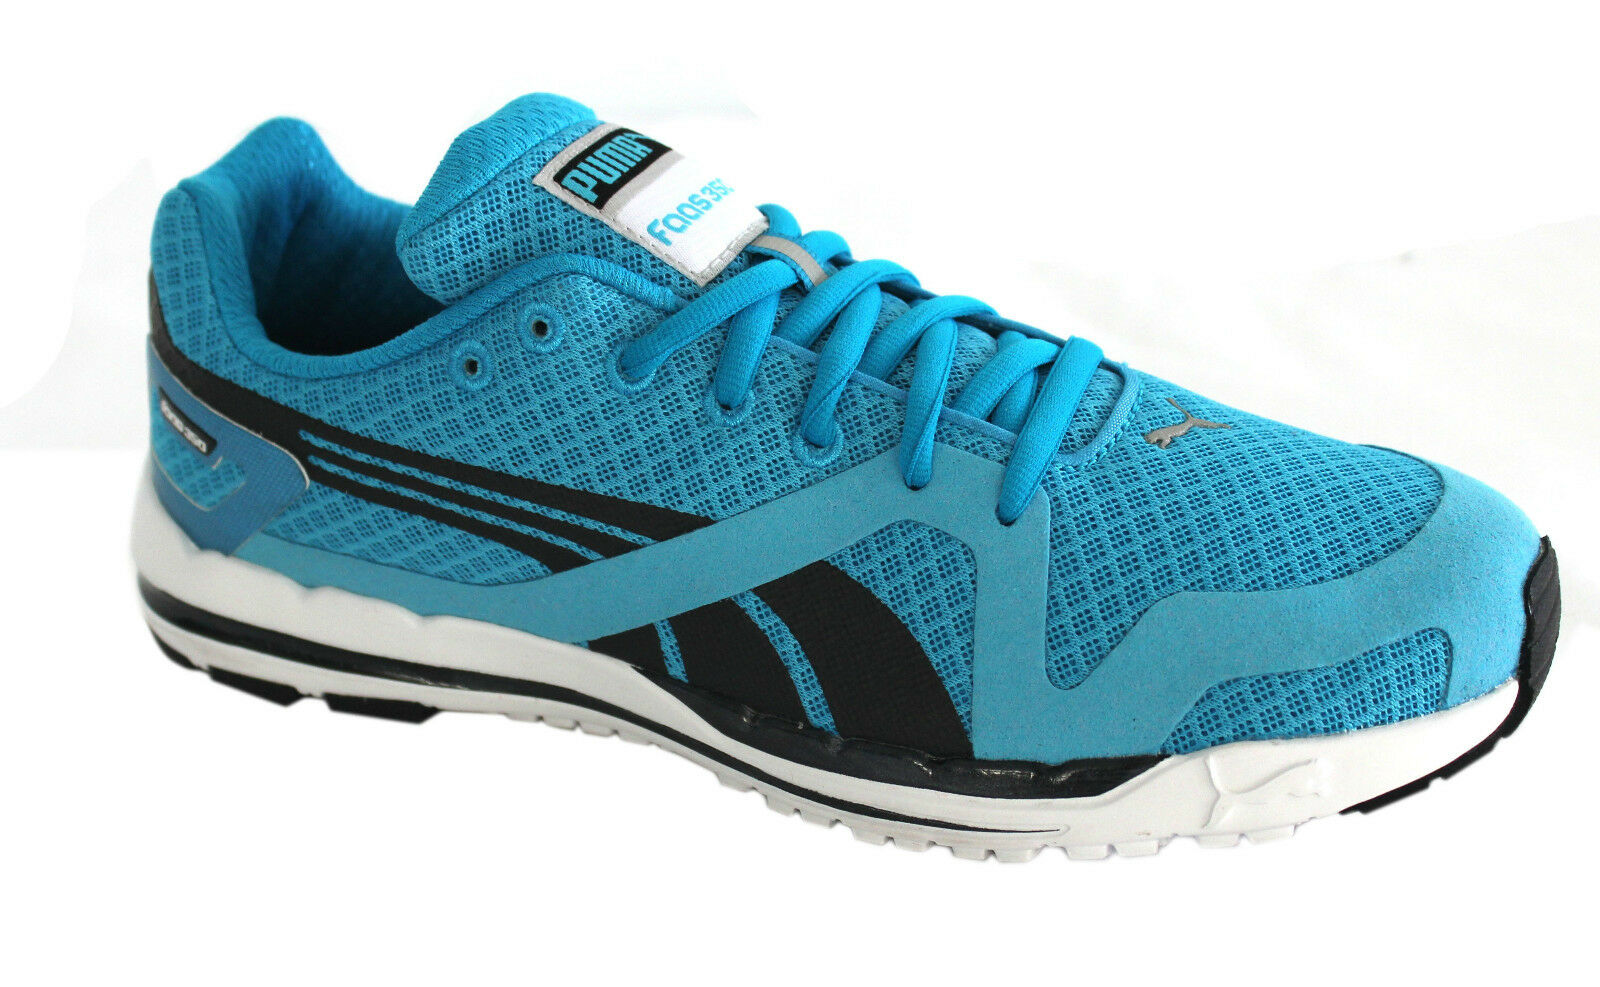 Puma Faas 350 S Mens Trainers Running Shoes Blue Lace Up Fitness 186140 04 D20 Great discount